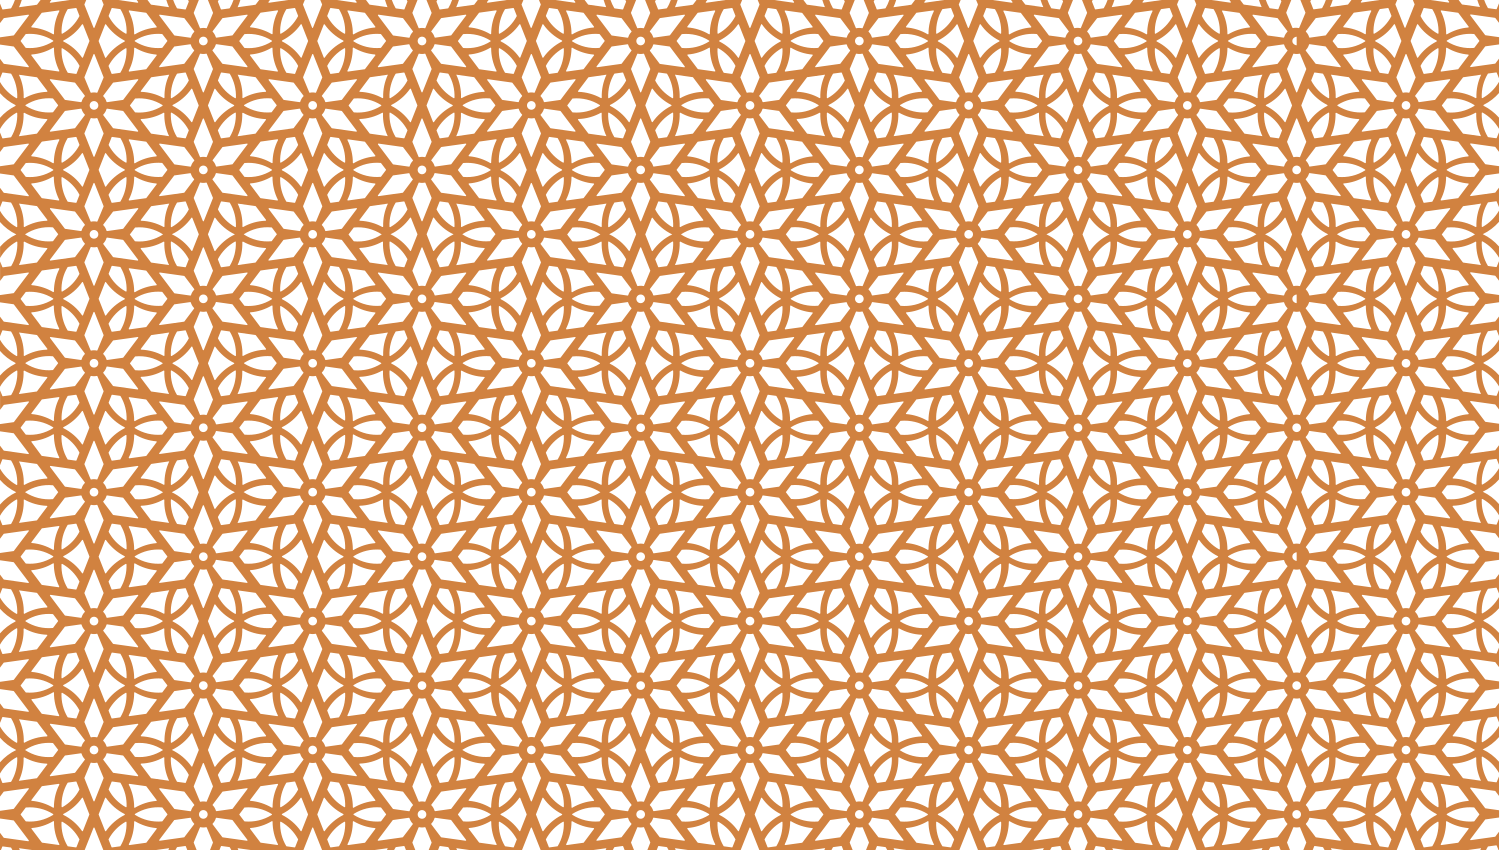 Parasoleil™ Boulder Flower© pattern displayed with a ochre color overlay